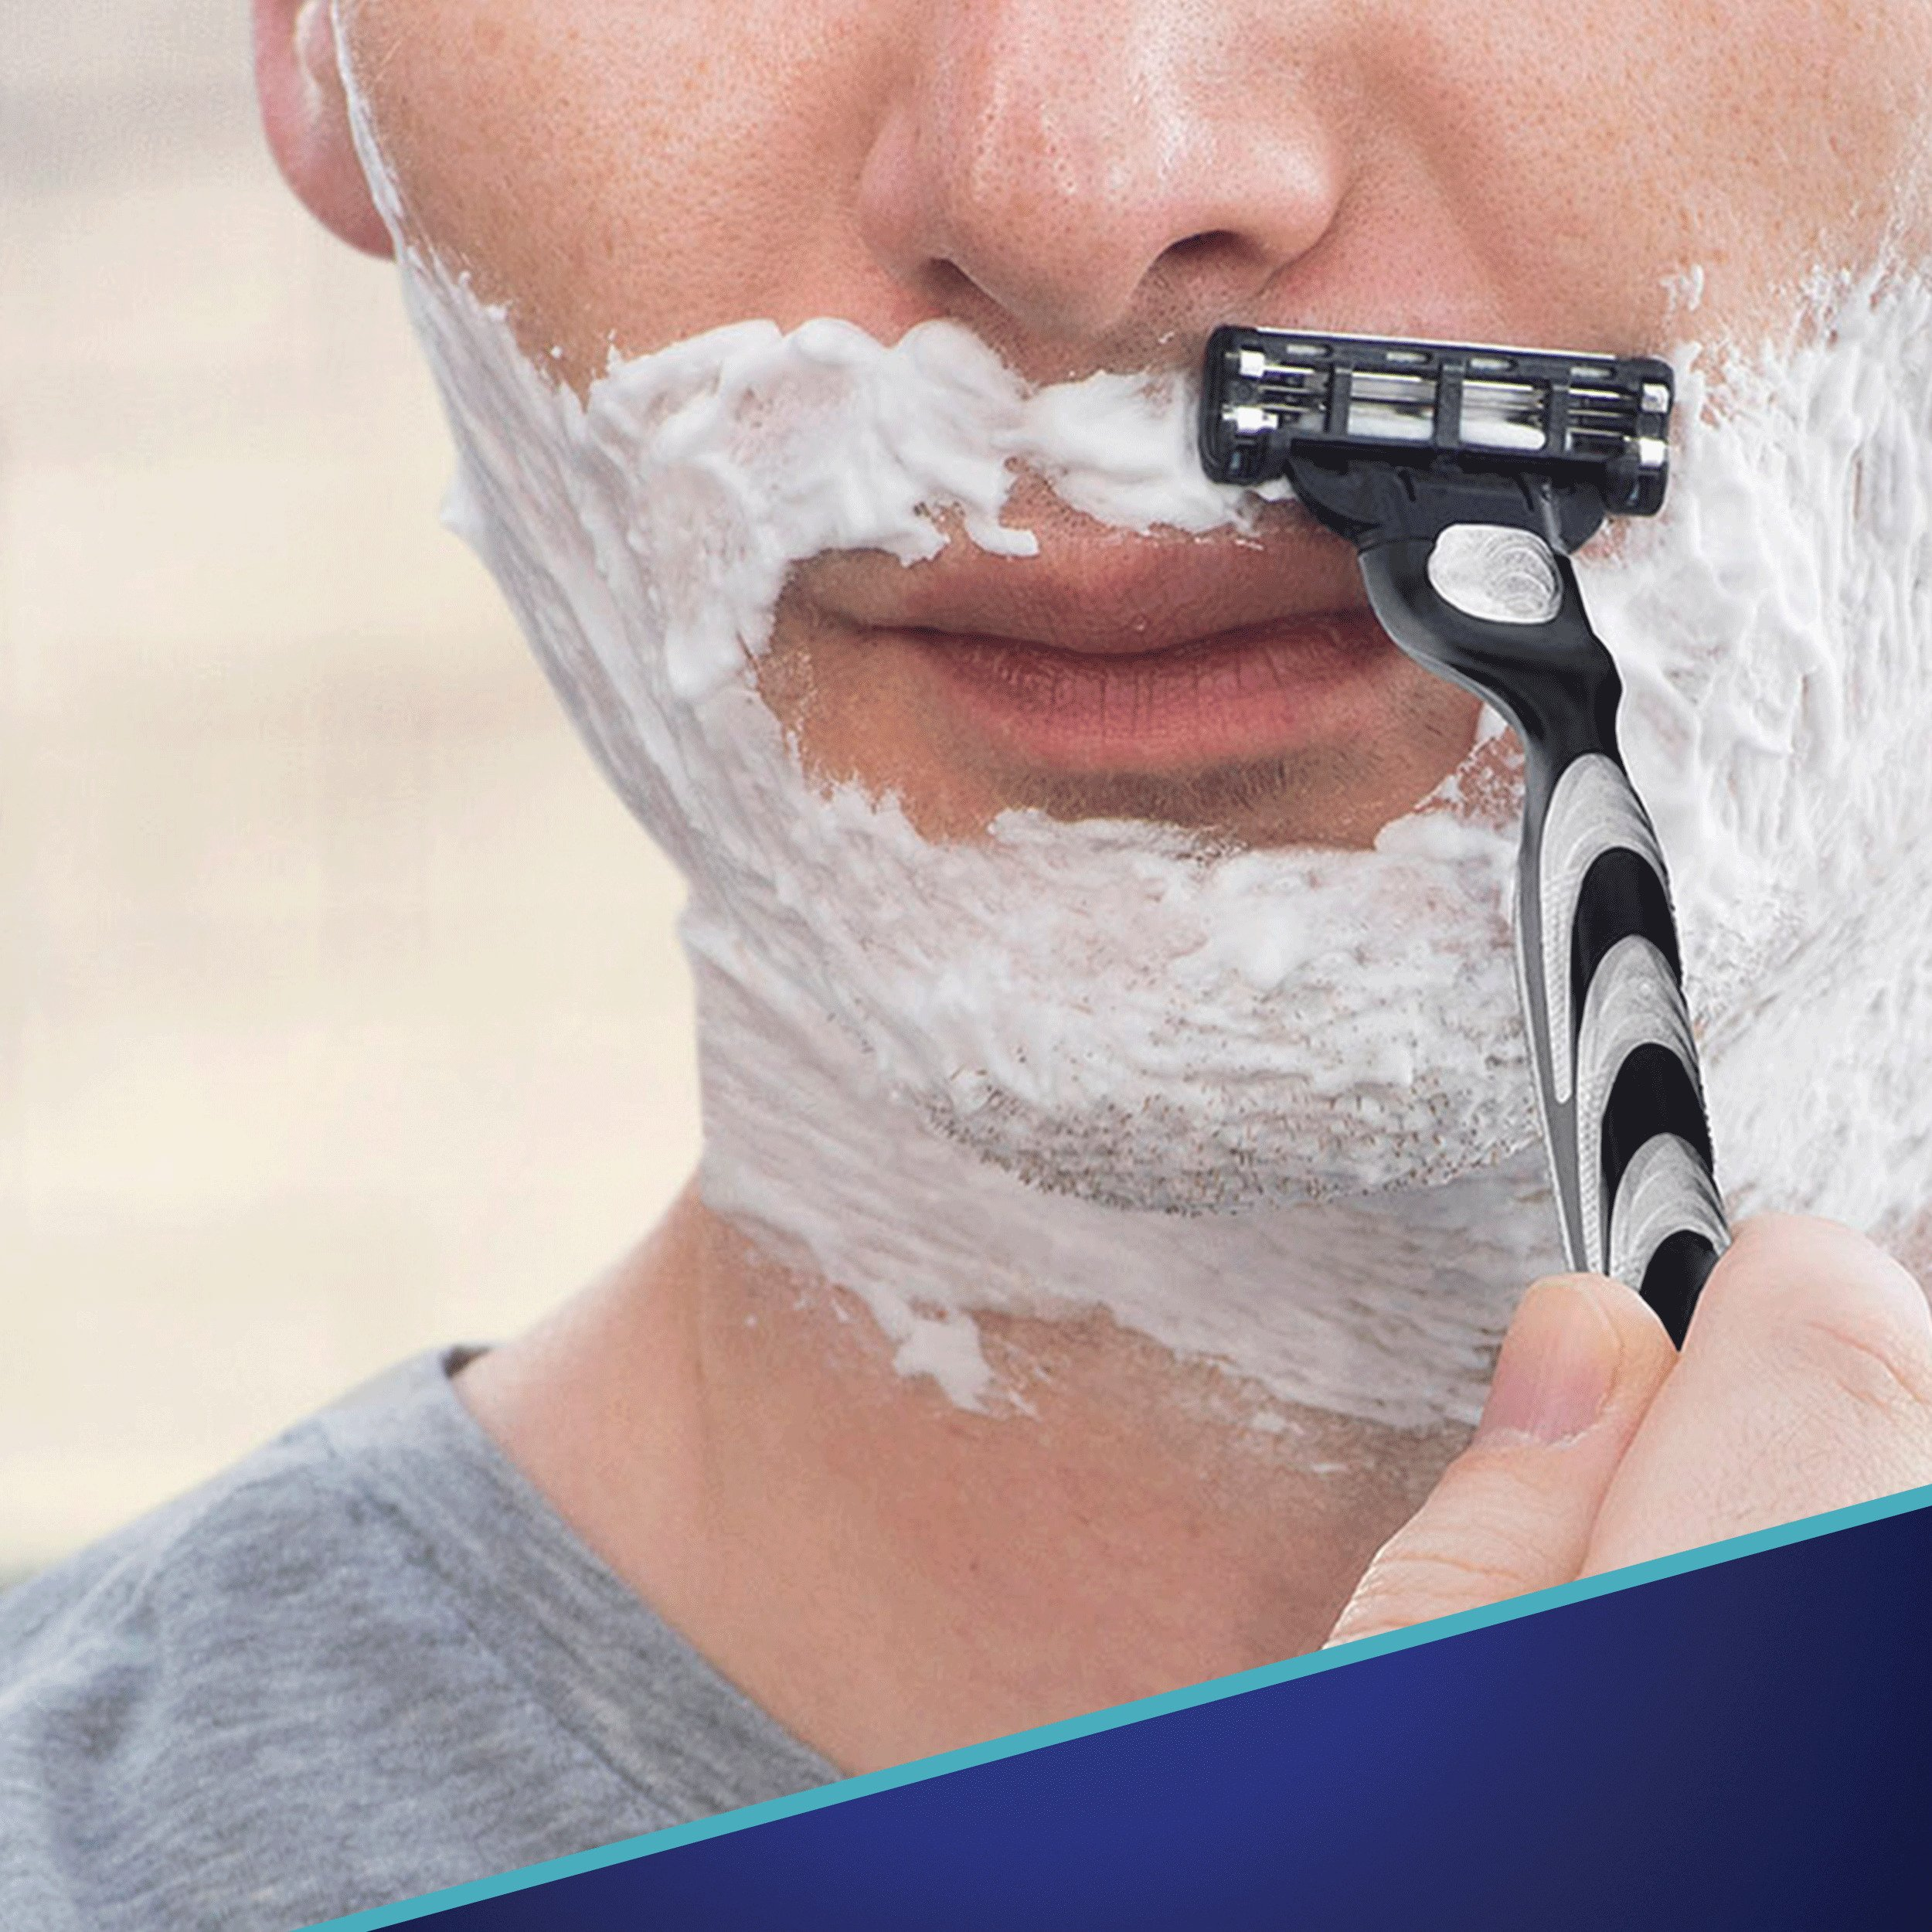 Gillette Mach3 Men's Razor Blades, 8 Blade Refills (Packaging May Vary) by Gillette (Image #3)